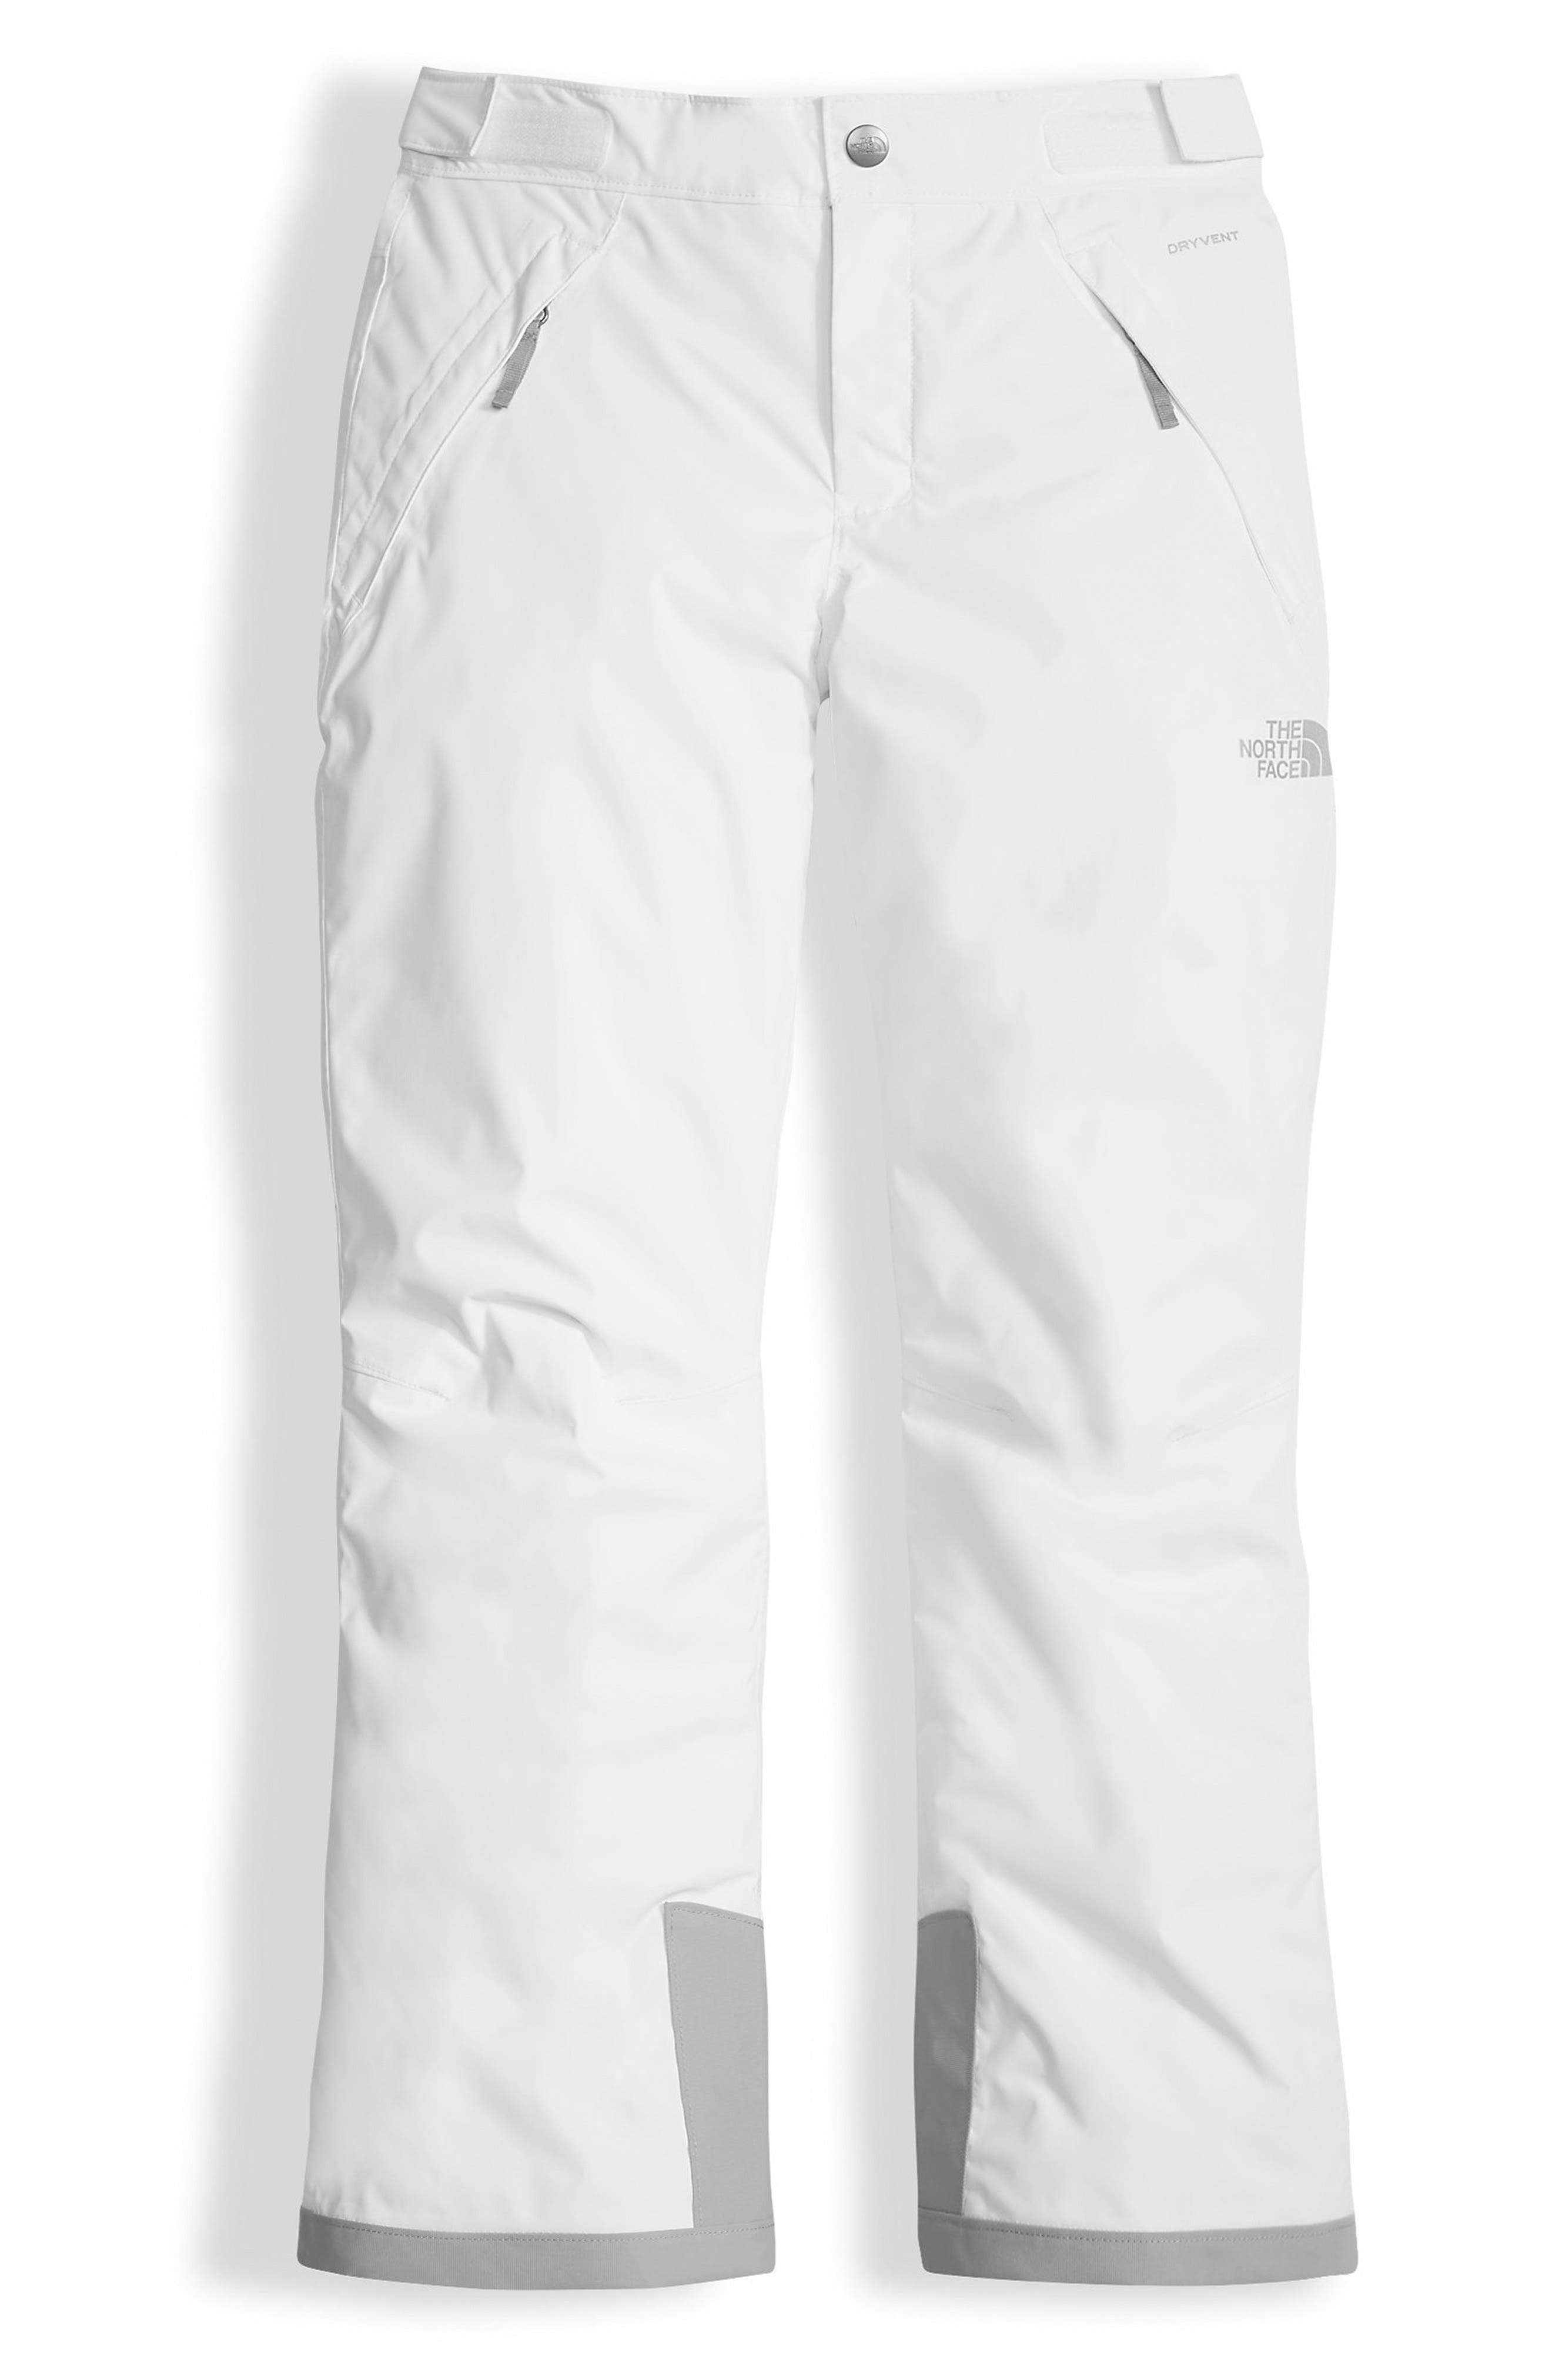 Girls The North Face Freedom Waterproof Heatseeker(TM) Insulated Snow Pants Size M (1012)  White